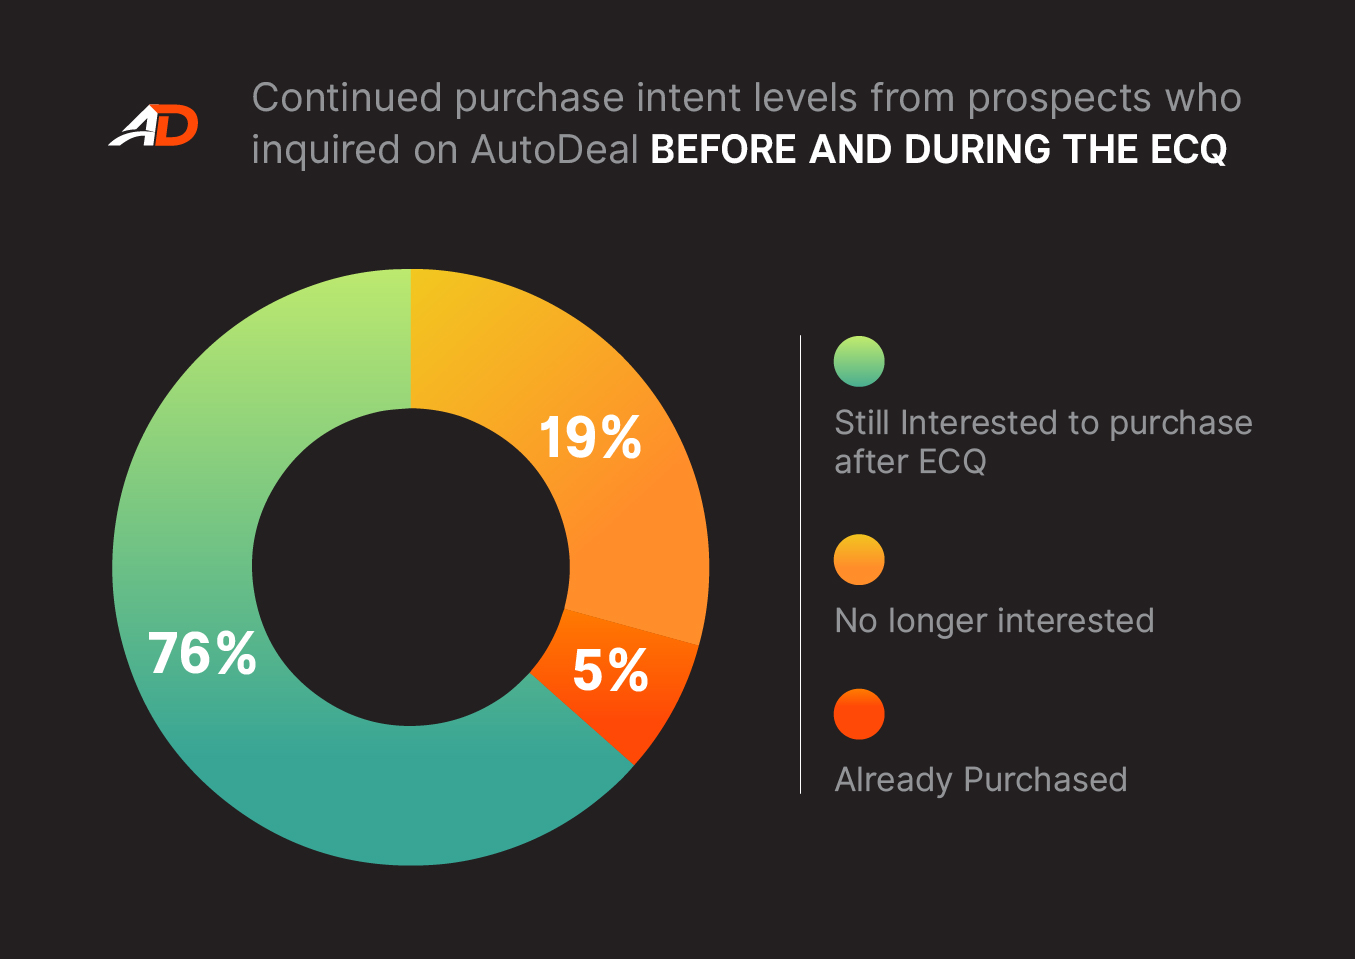 How many consumers are still interested in purchasing after ECQ